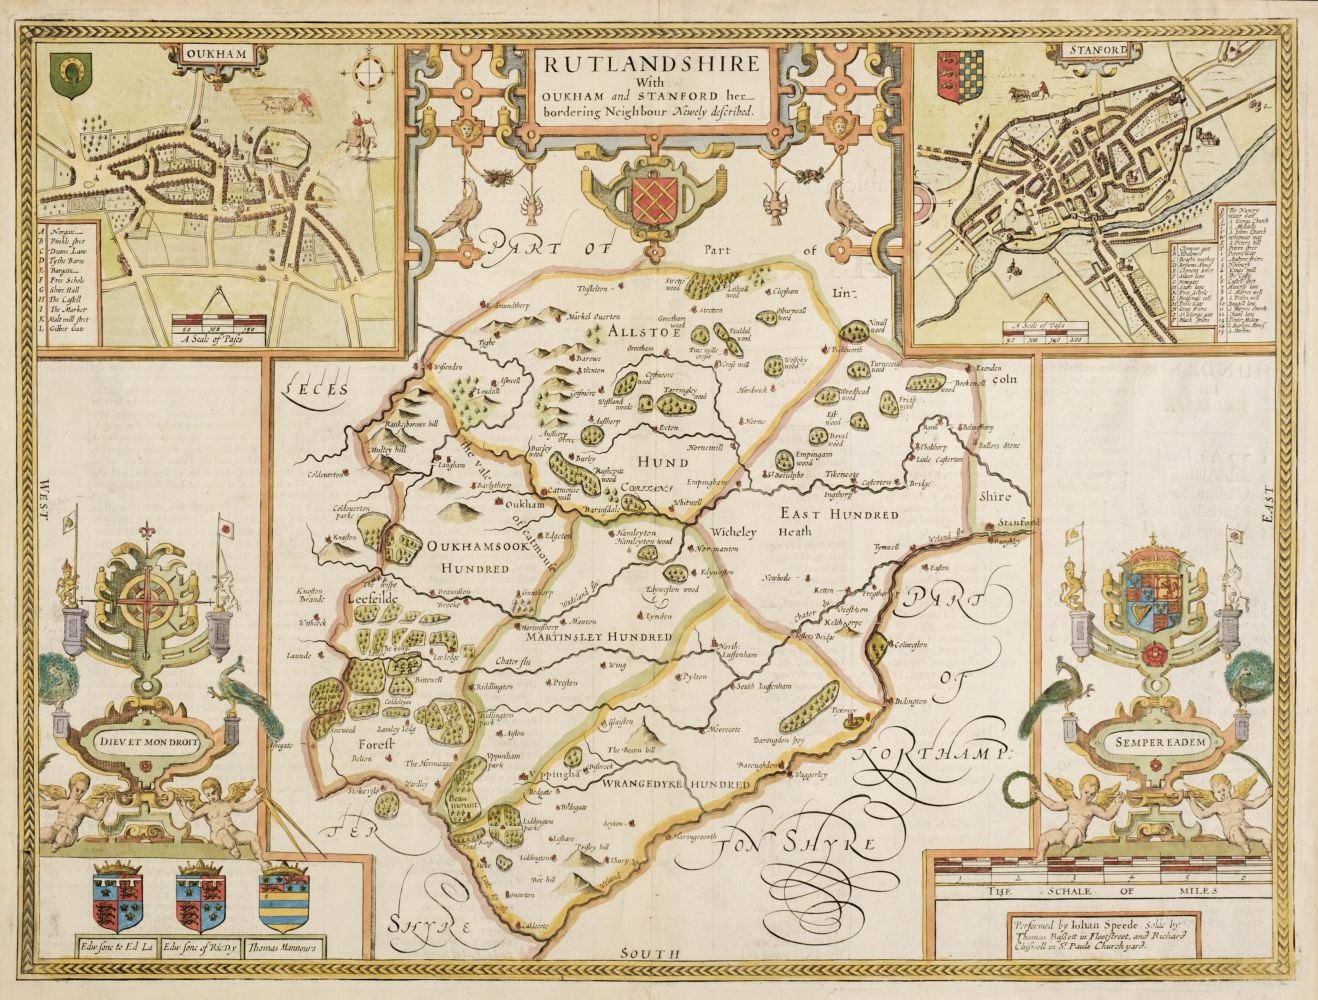 Rutland. Speed (John), Rutlandshire with Oukham and Stanford..., 1676